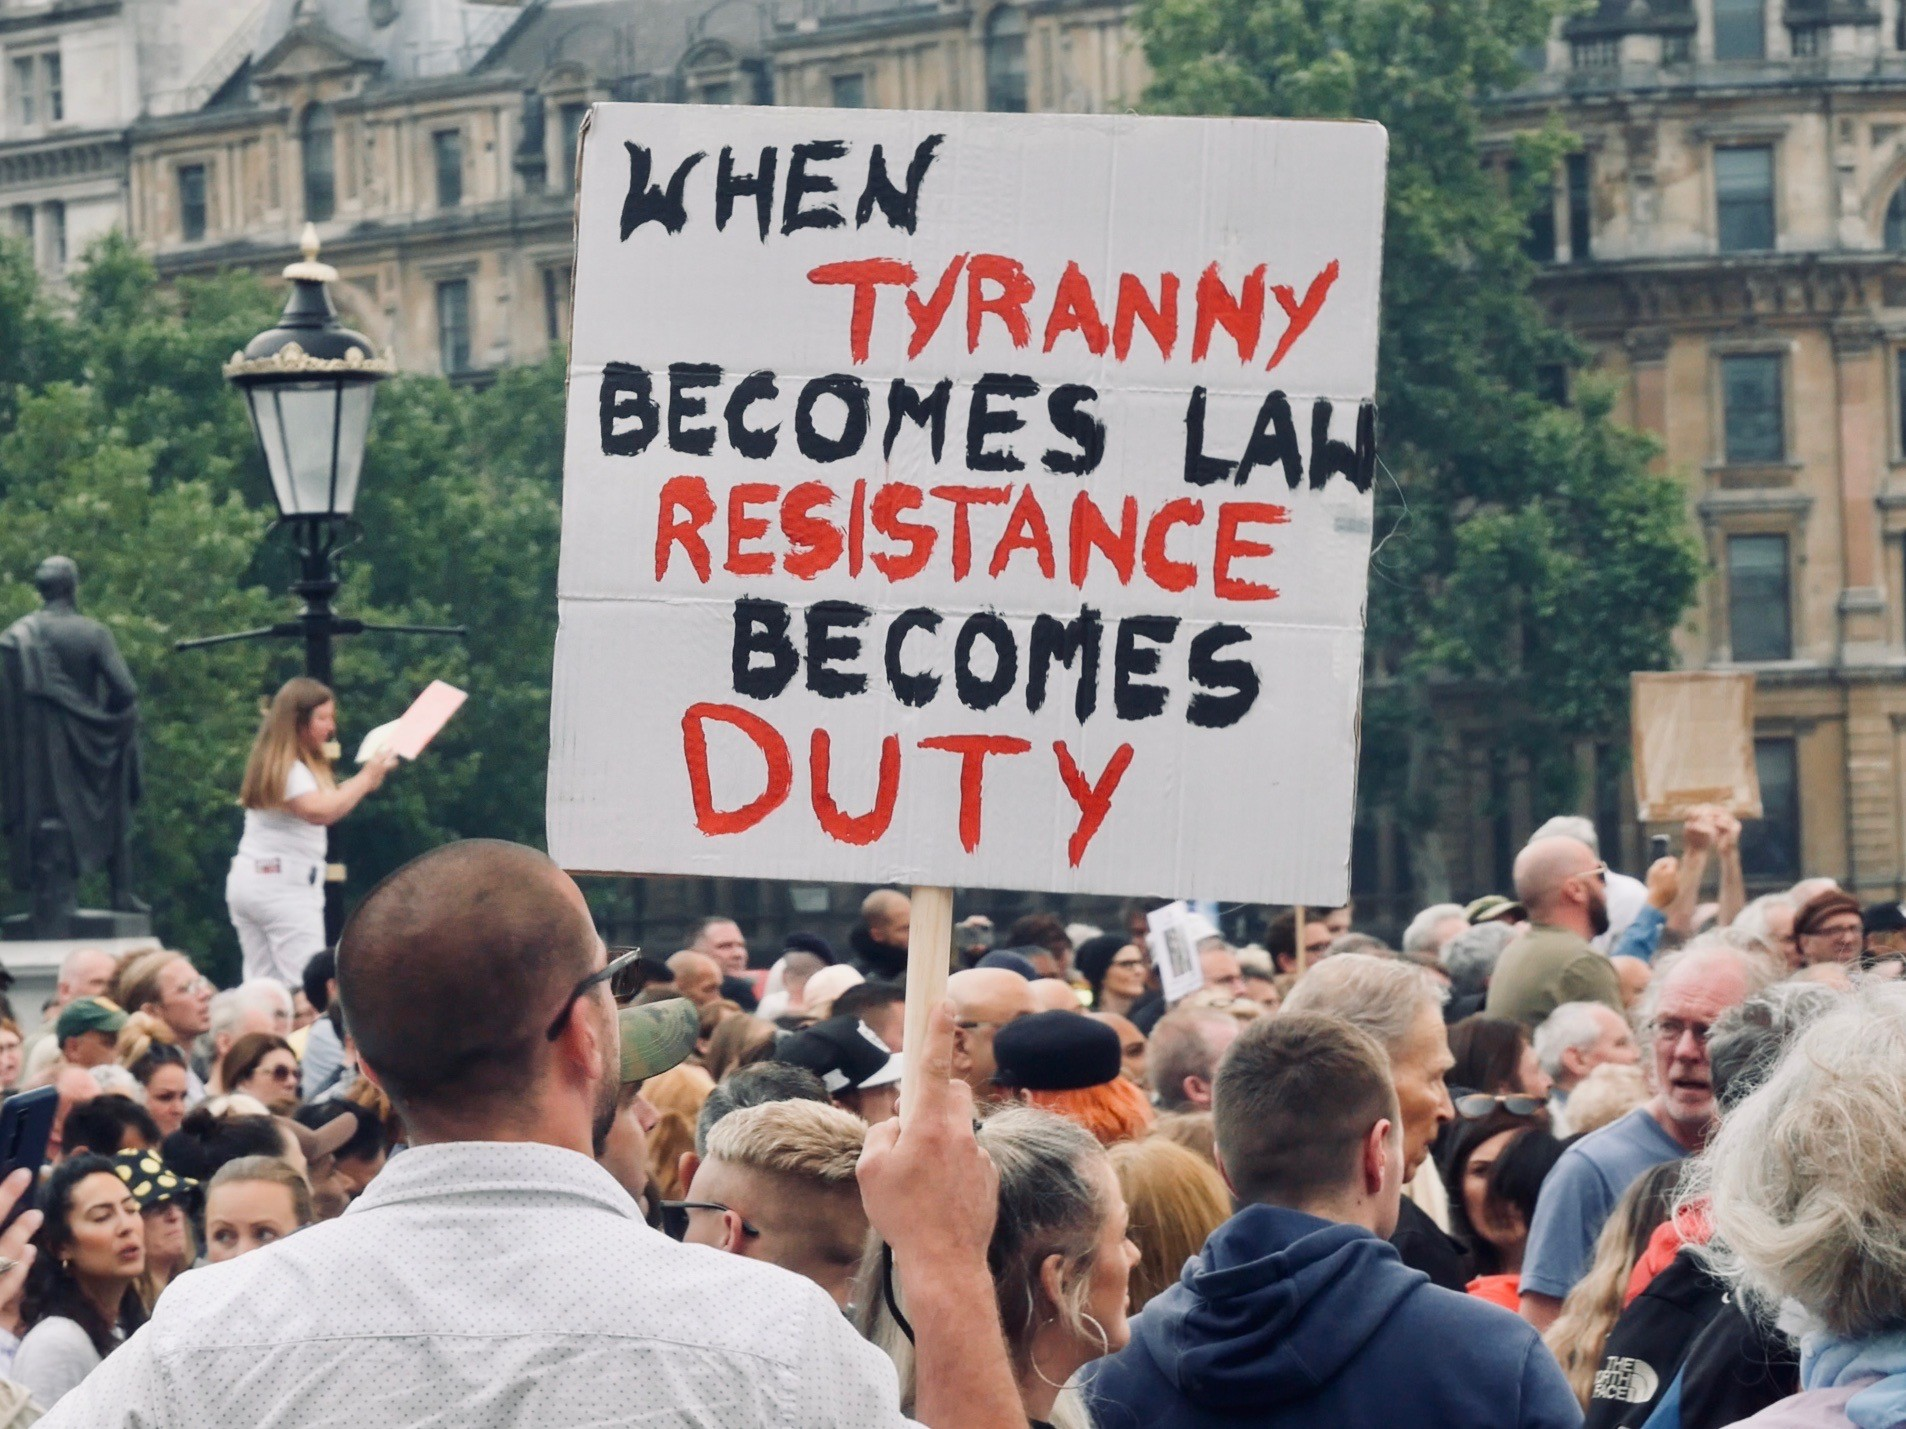 """A protester holds a placard reading """"When tyranny becomes the law, resistance becomes duty"""" at the Freedom Rally in London's Trafalgar Square, July 24th, 2021. Kurt Zindulka, Breitbart News"""